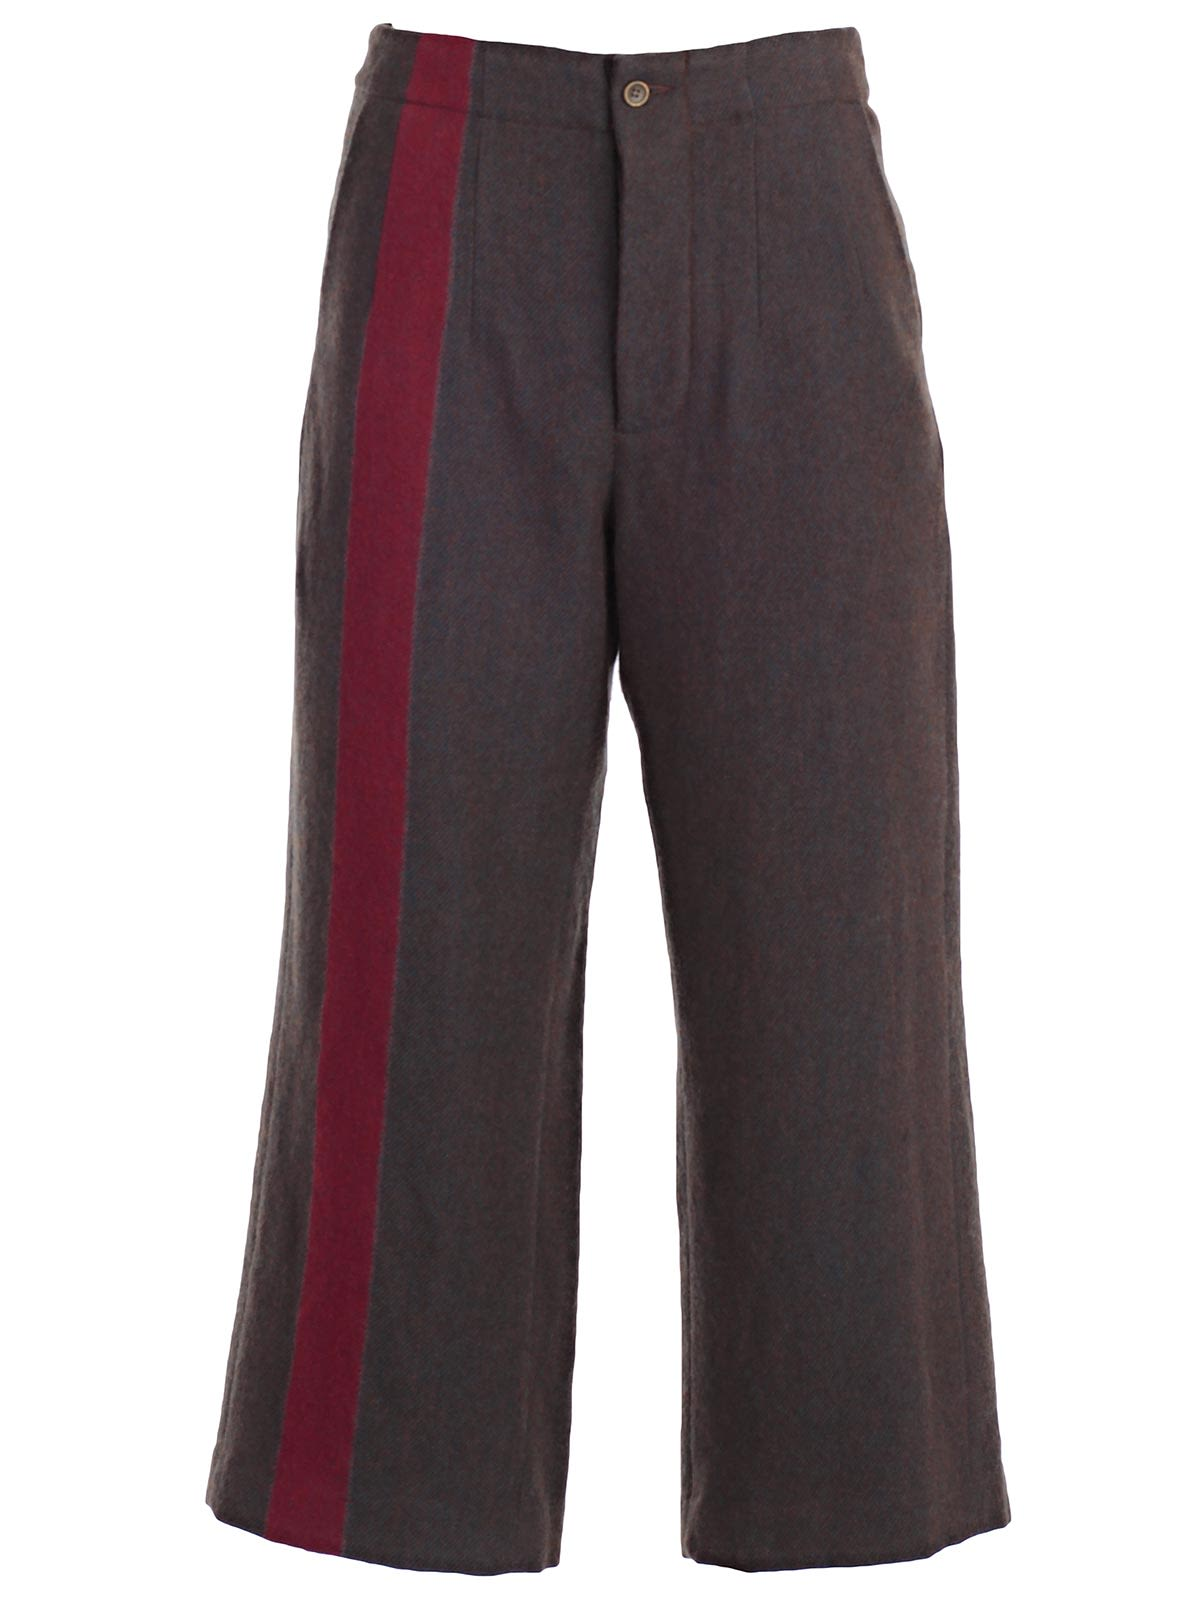 CROPPED SIDE STRIPE TROUSERS from Italist.com